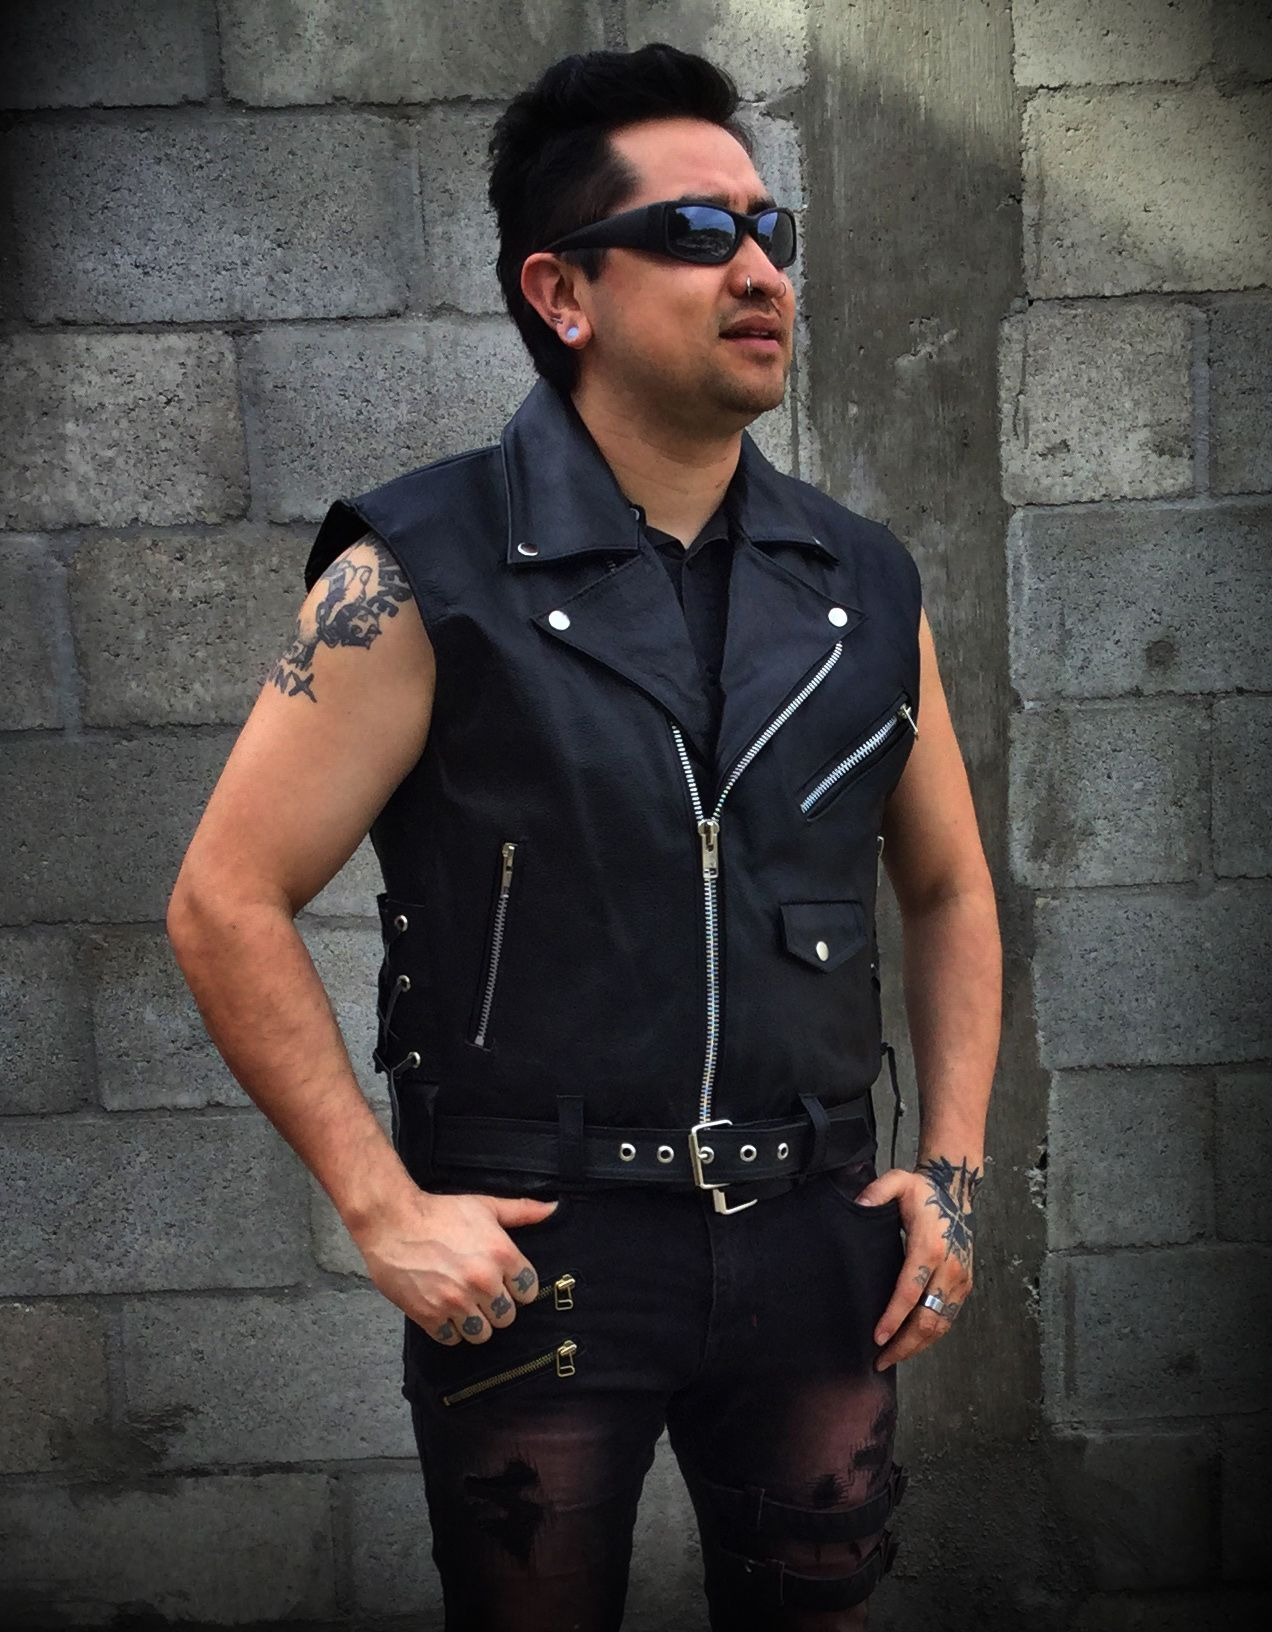 Black Leather Biker Vest 100% Real Leather www.nuclearwasteunderground.com